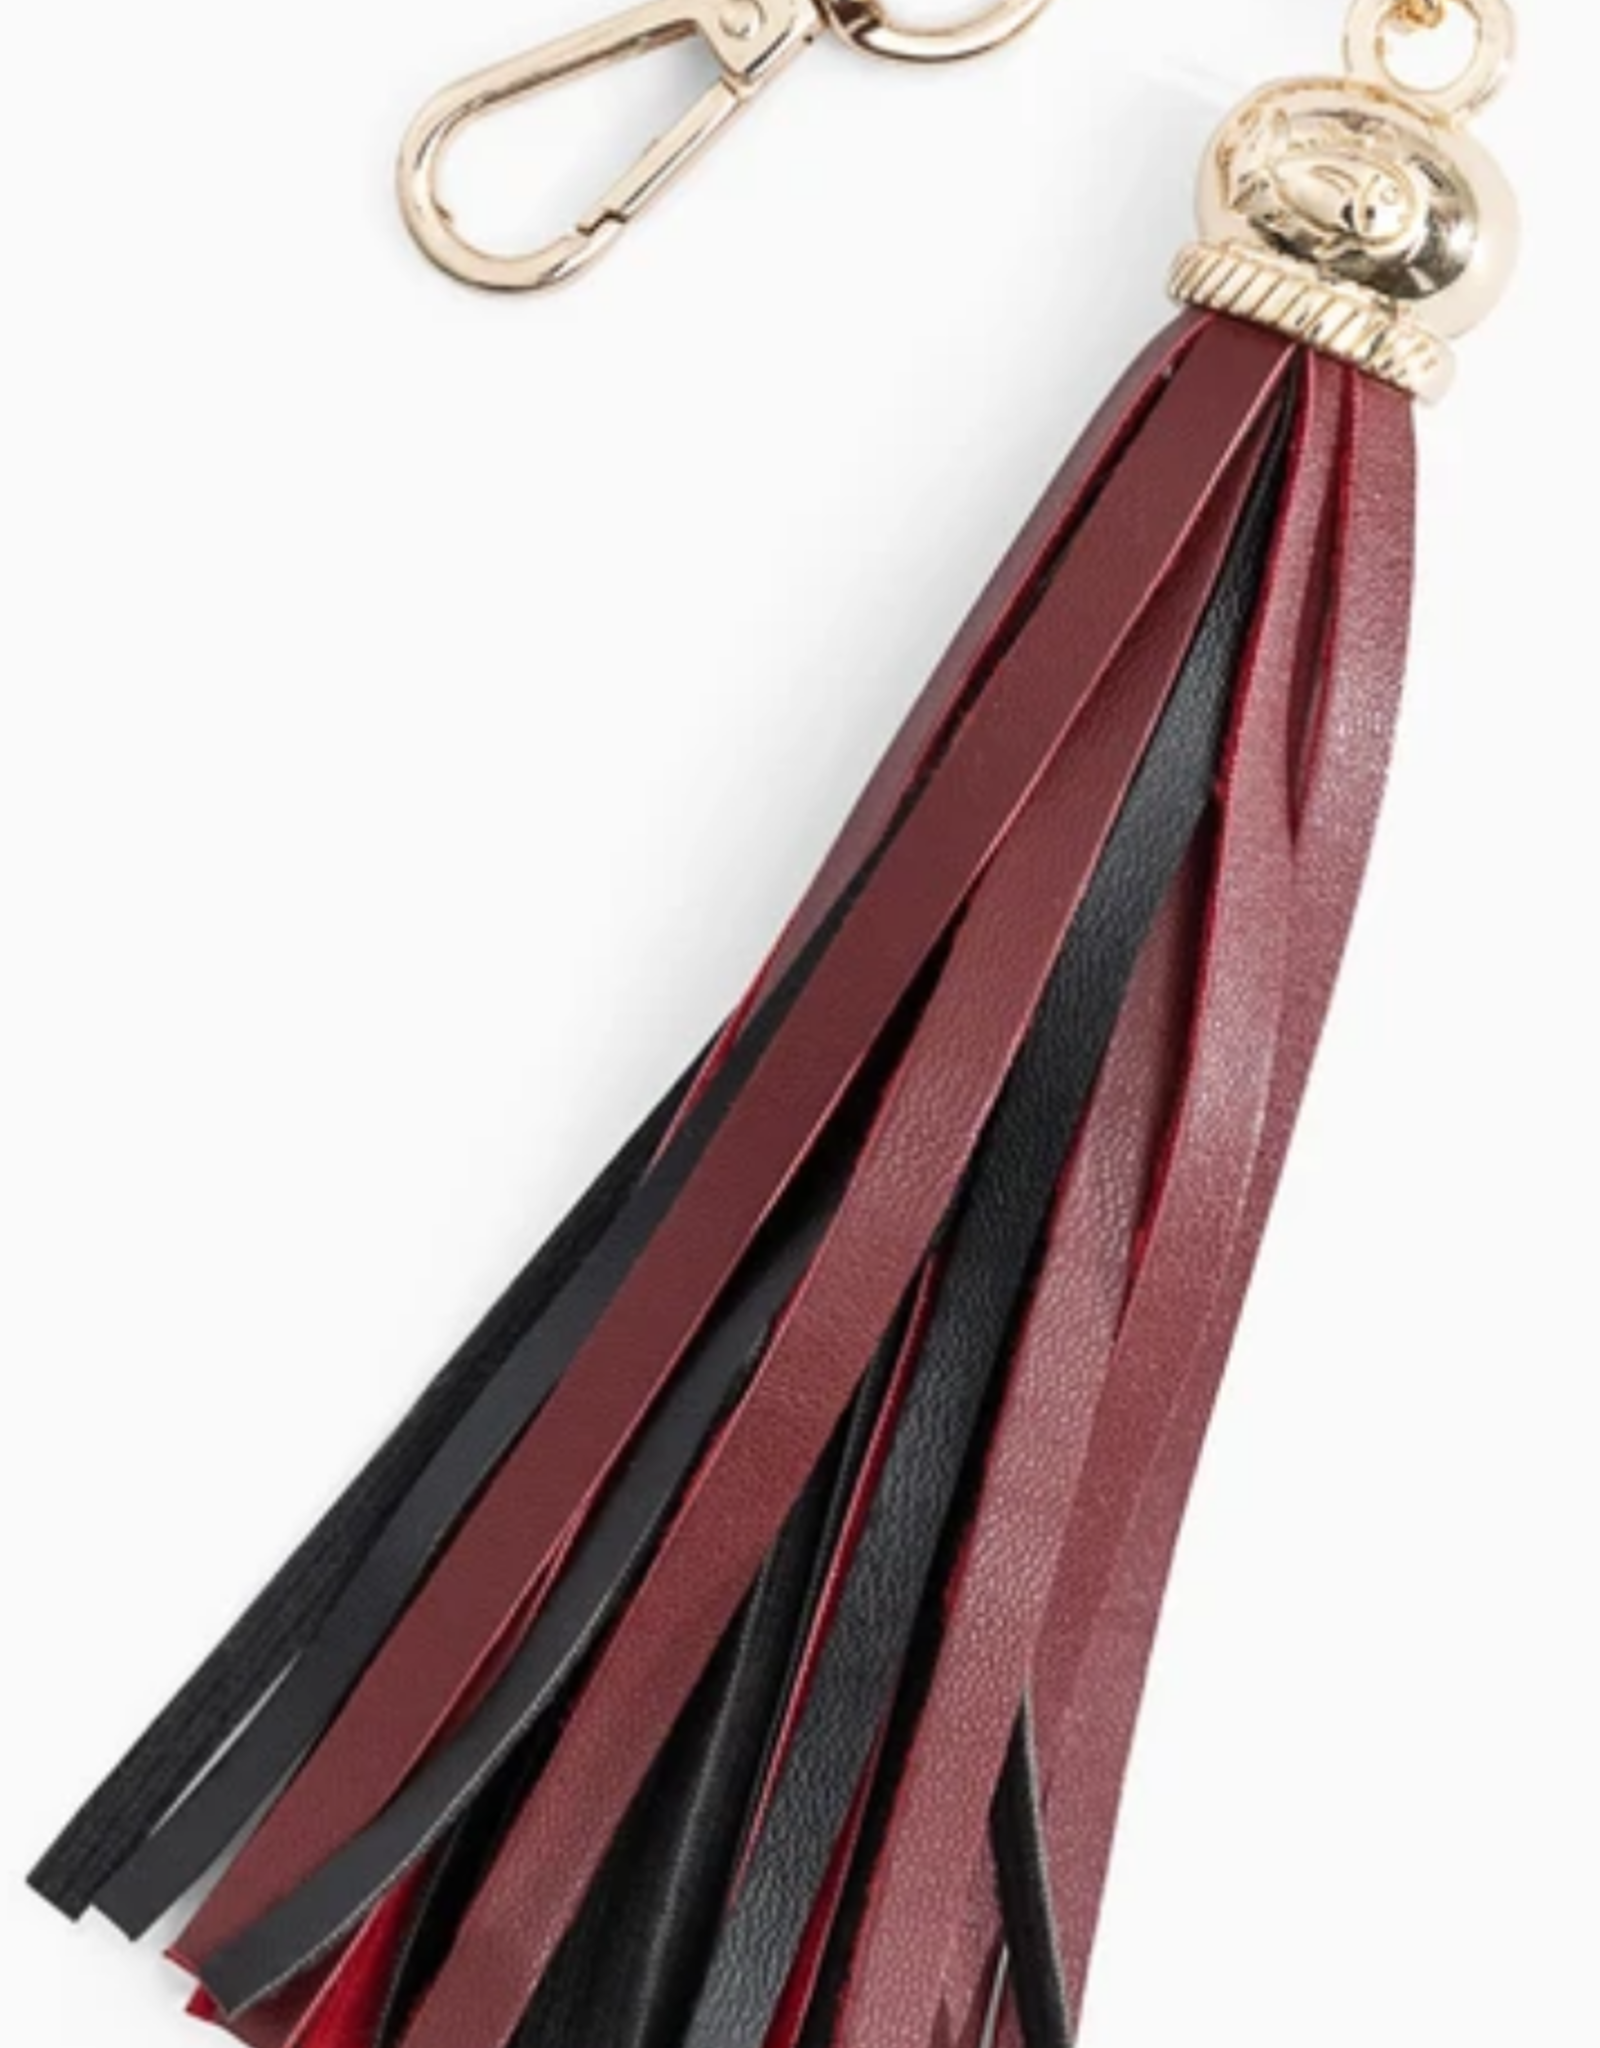 SOUTHERN TIDE GAME DAY TASSEL